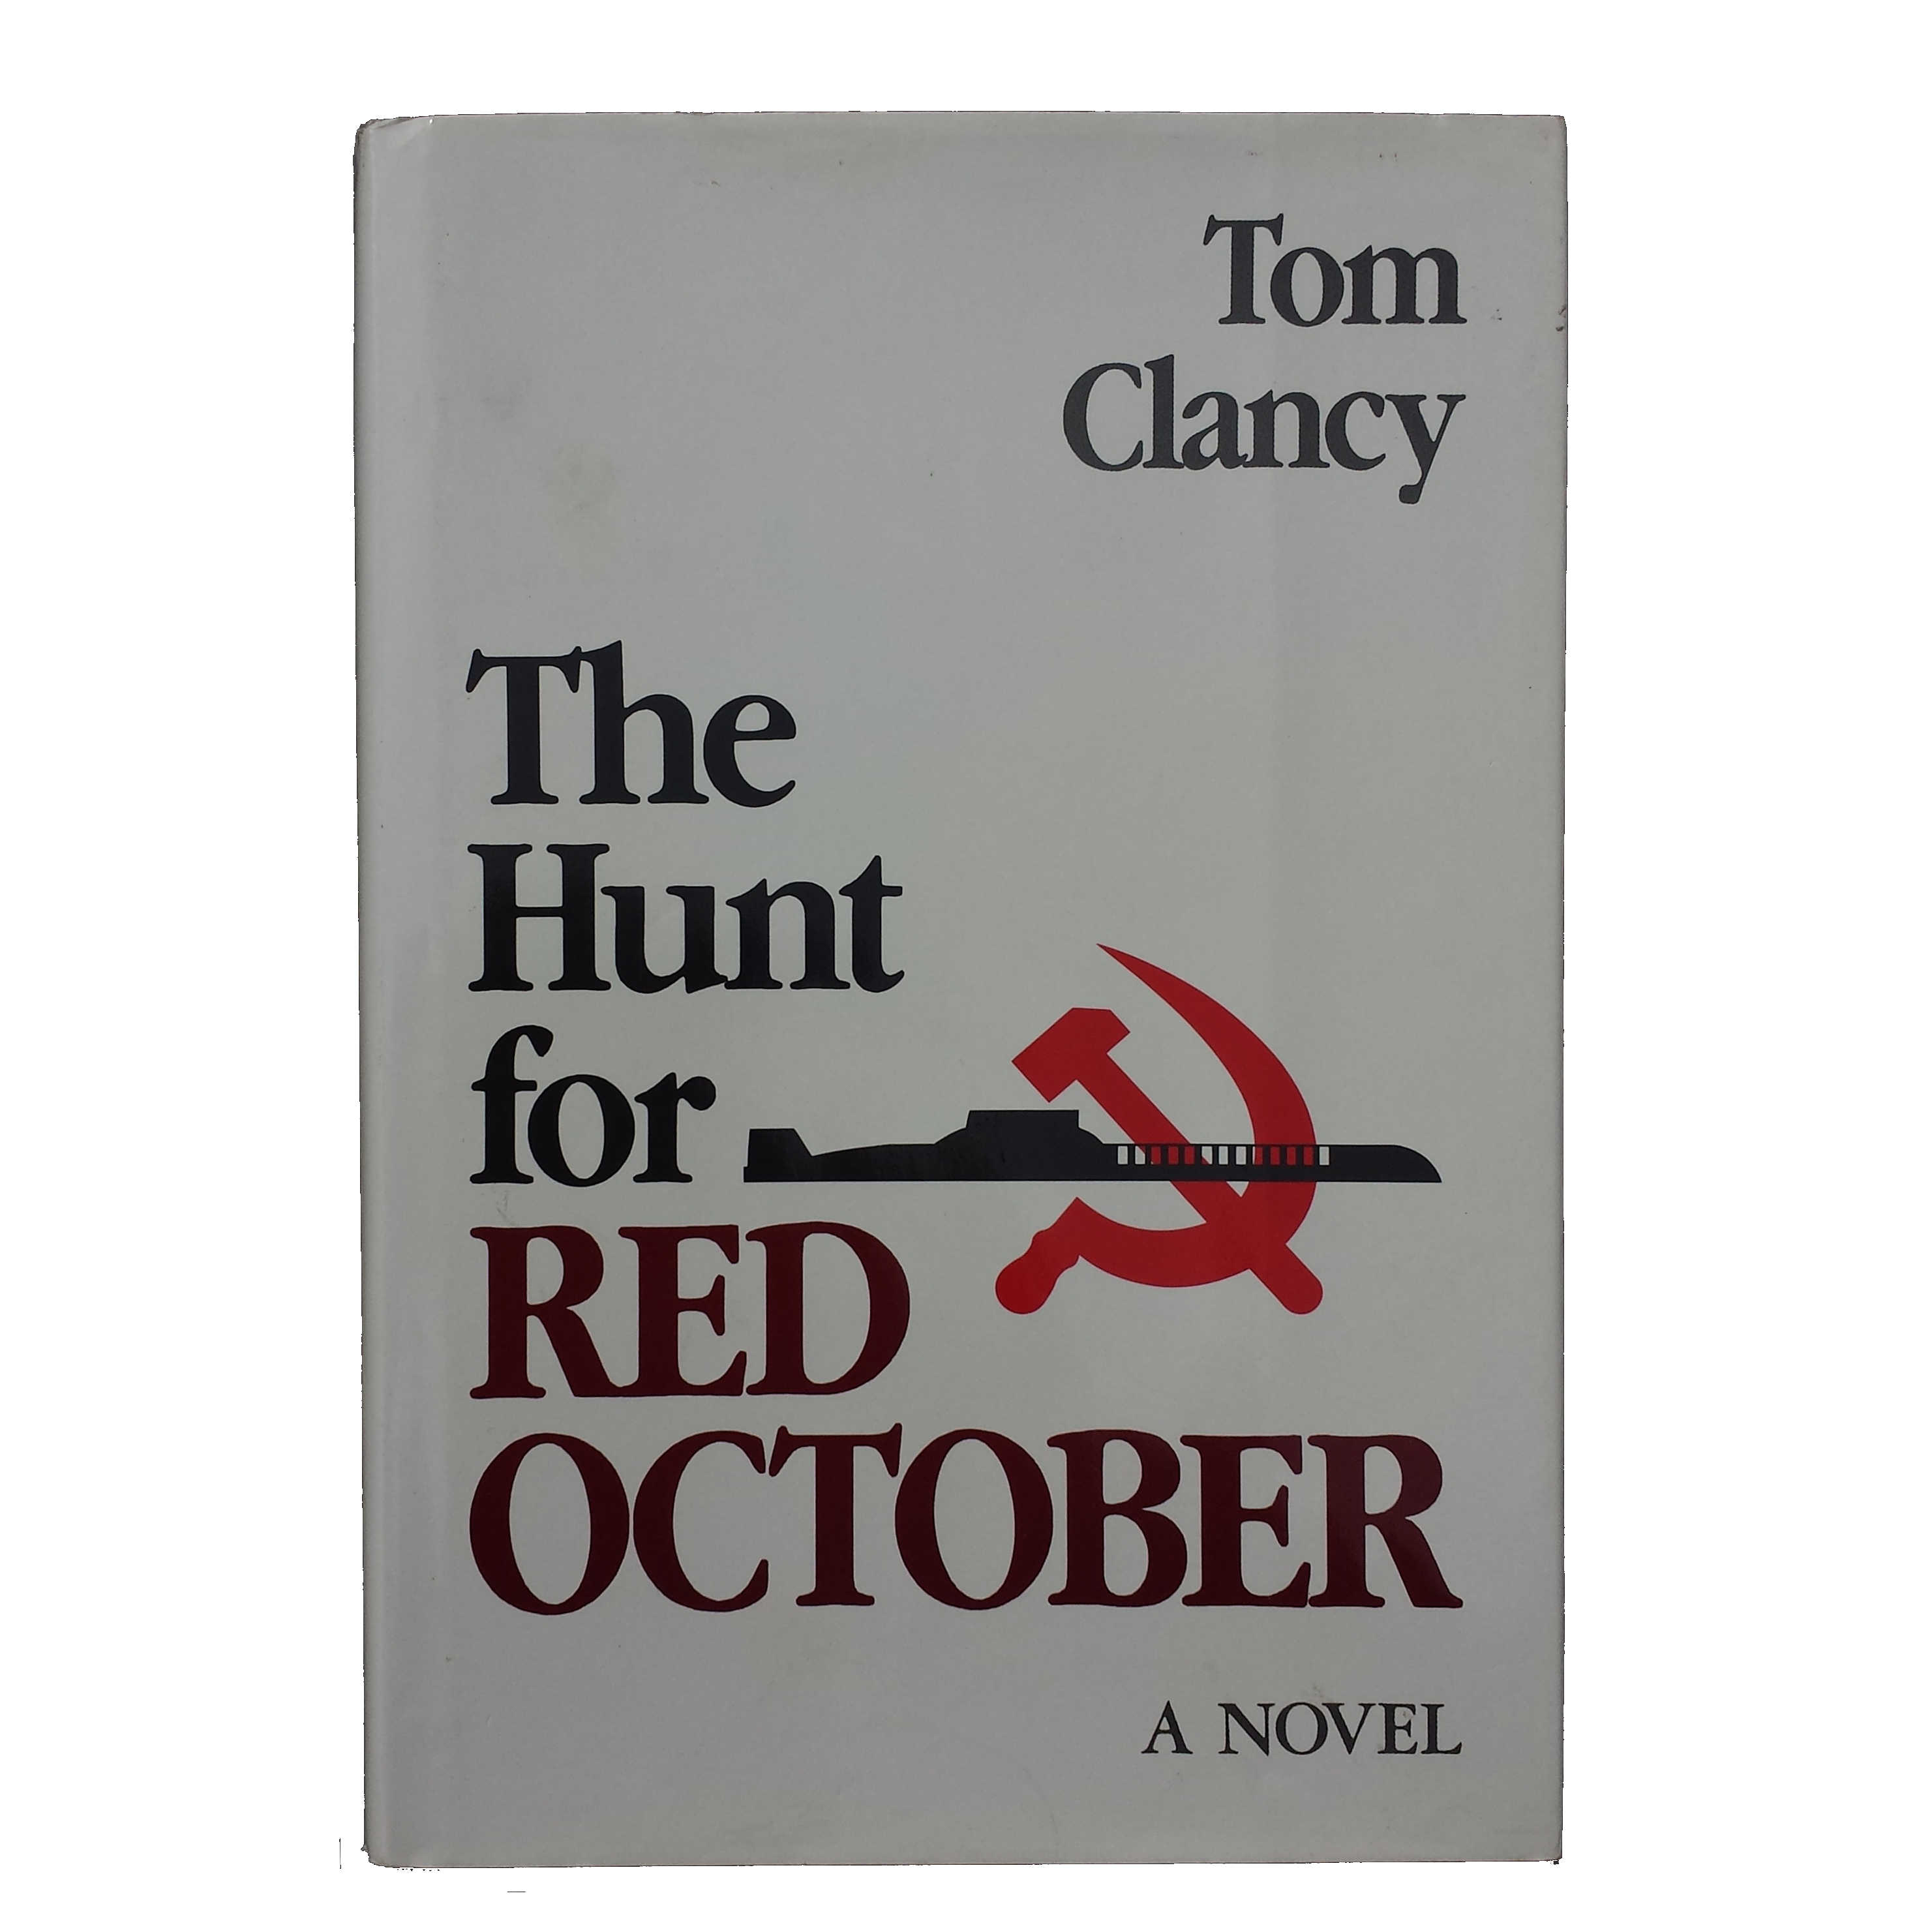 The Hunt for Red October (1985) Tom Clancy - Signed, 1st, 8th printing